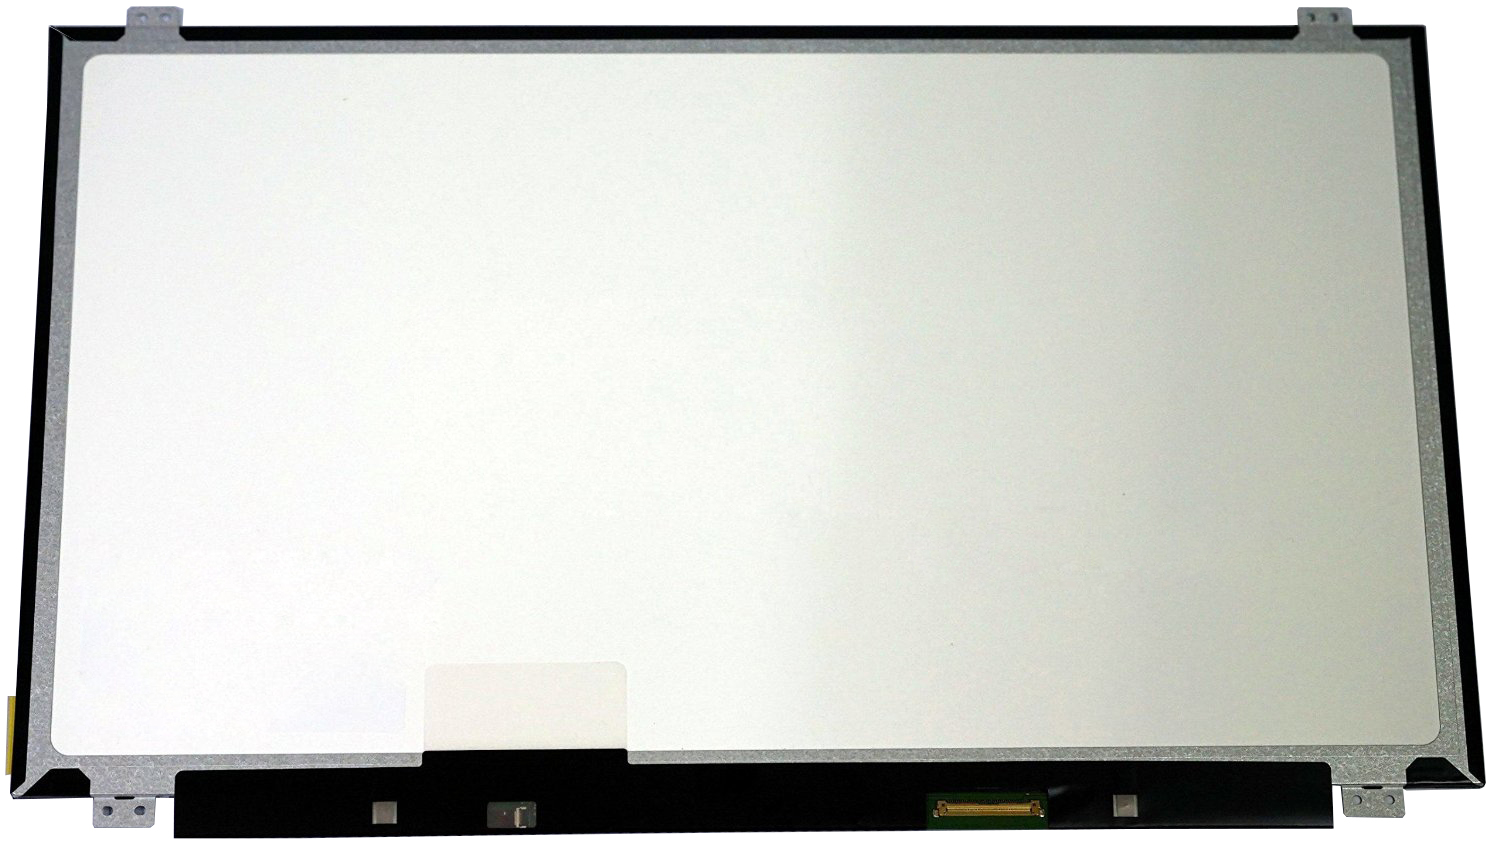 QuYing LAPTOP LCD SCREEN For ACER ASPIRE 5553 5553G 5534 5538 5538G 5943G SERIES 15.6 inch, 1366X768, 40 pin, N) тональная основа catrice hd liquid coverage foundation 020 цвет 020 rose beige variant hex name f1c6a7